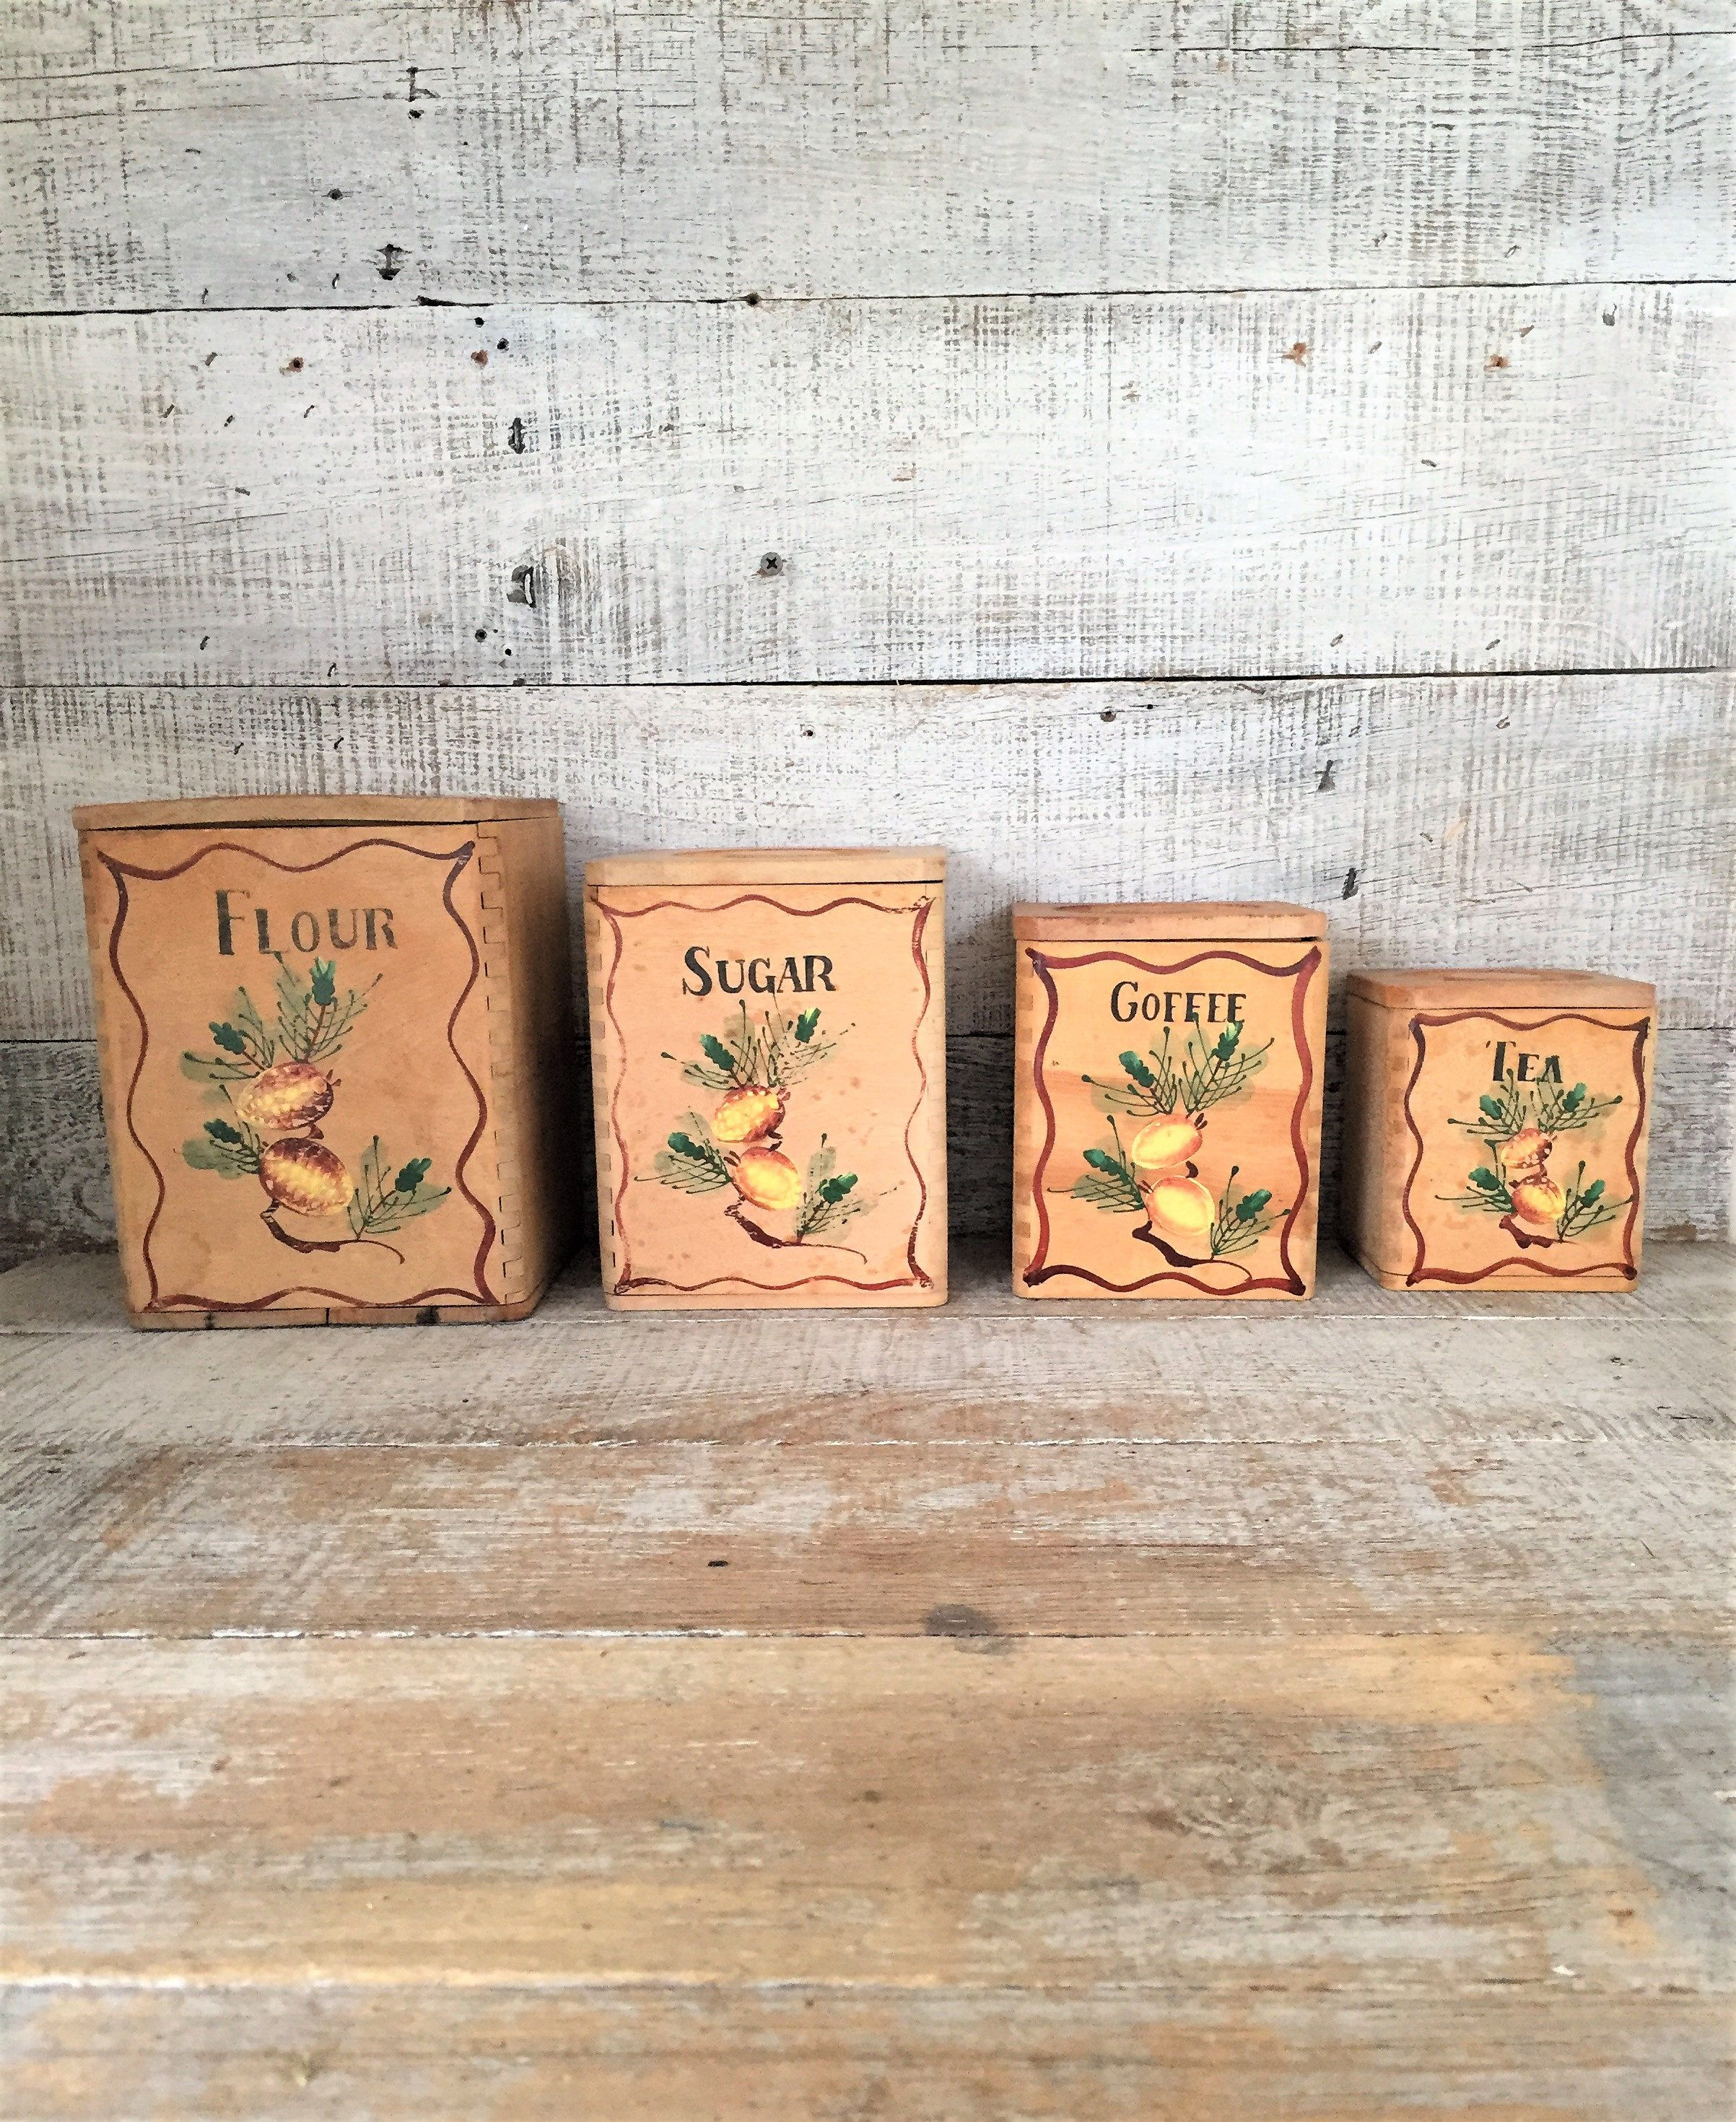 Canisters Wood Canisters Set 4 Kitchen Canisters Vintage Canisters Flour Sugar Coffee Tea Containers Kitchen Canister Set Made In Japan by TheDustyOldShack on Etsy